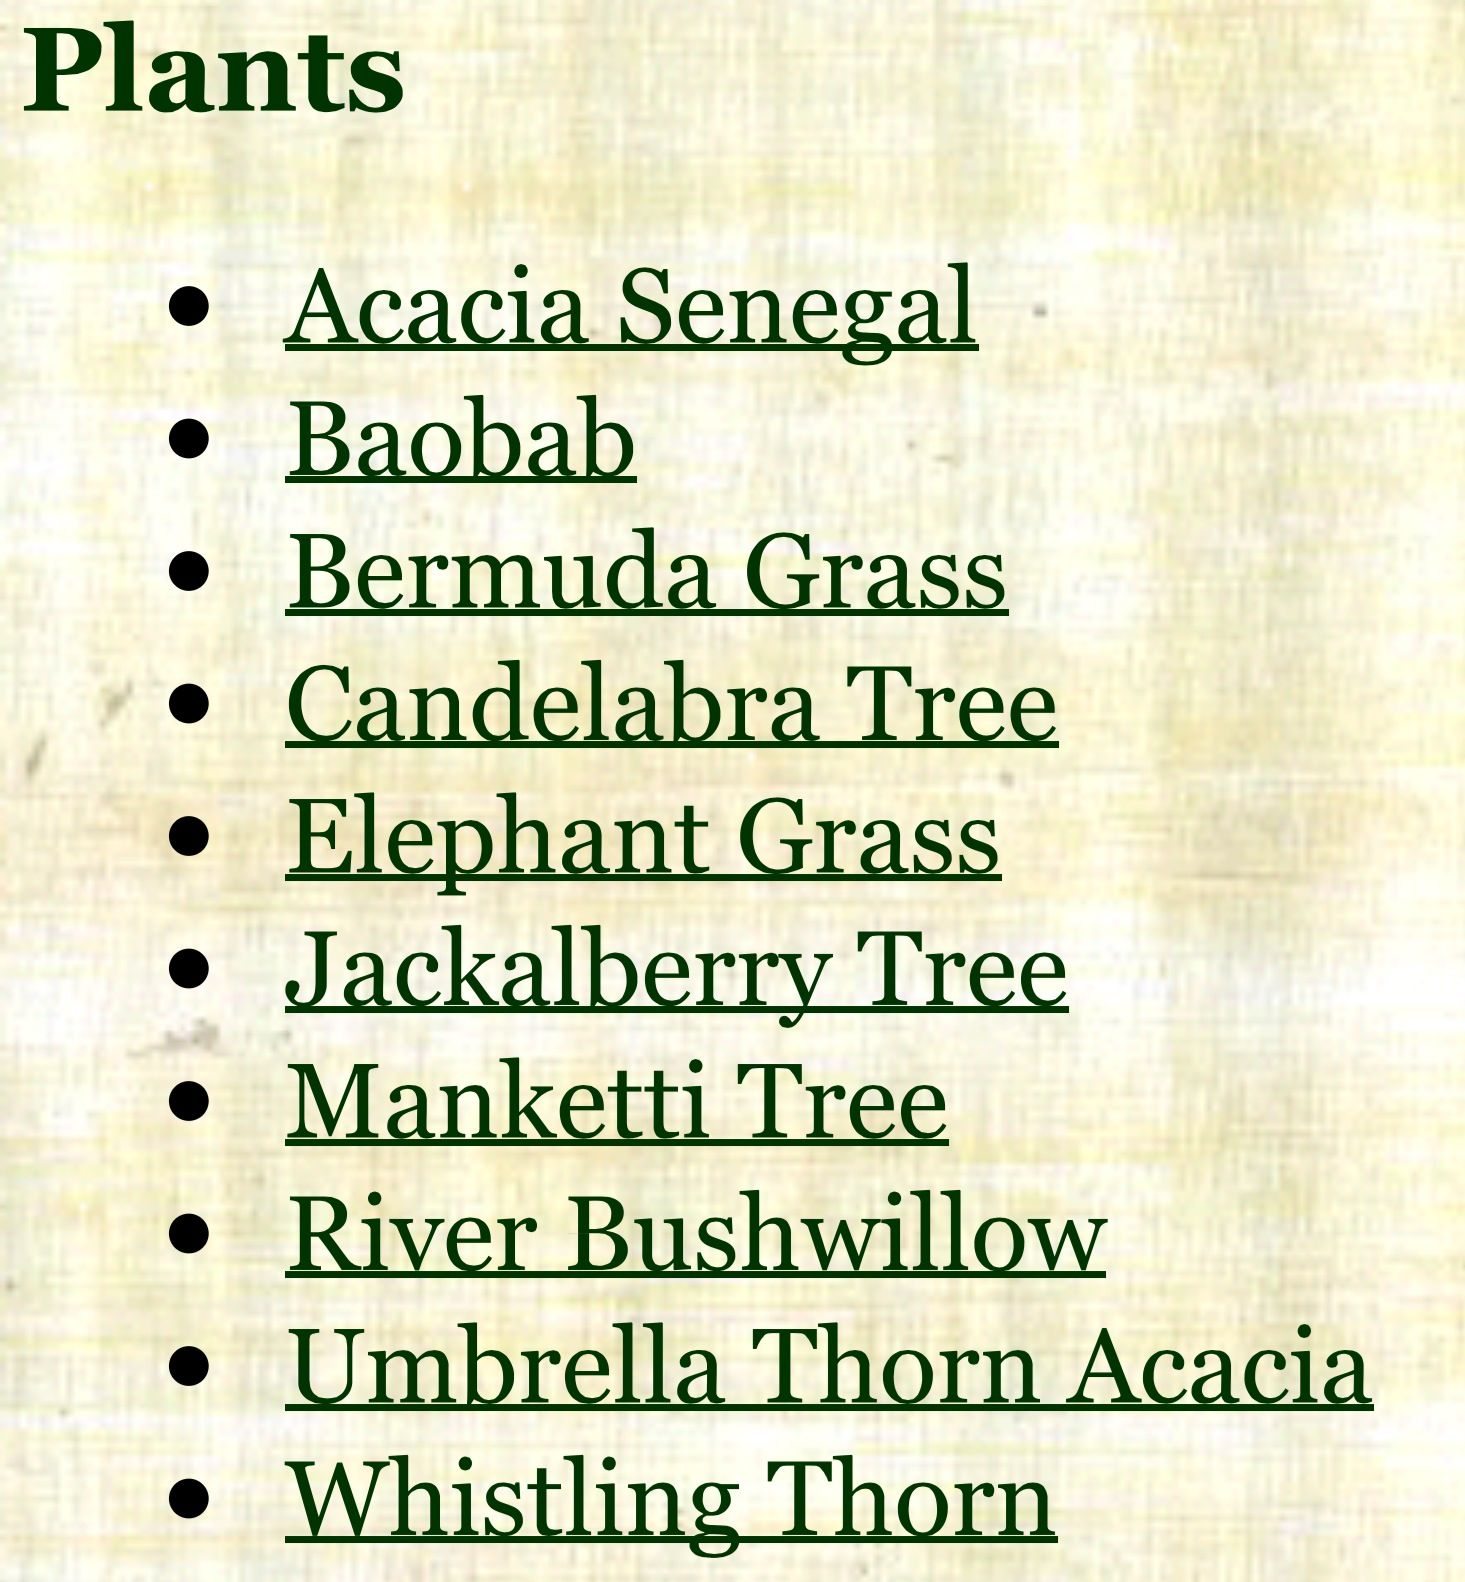 Dominant Plants In The African Savanna